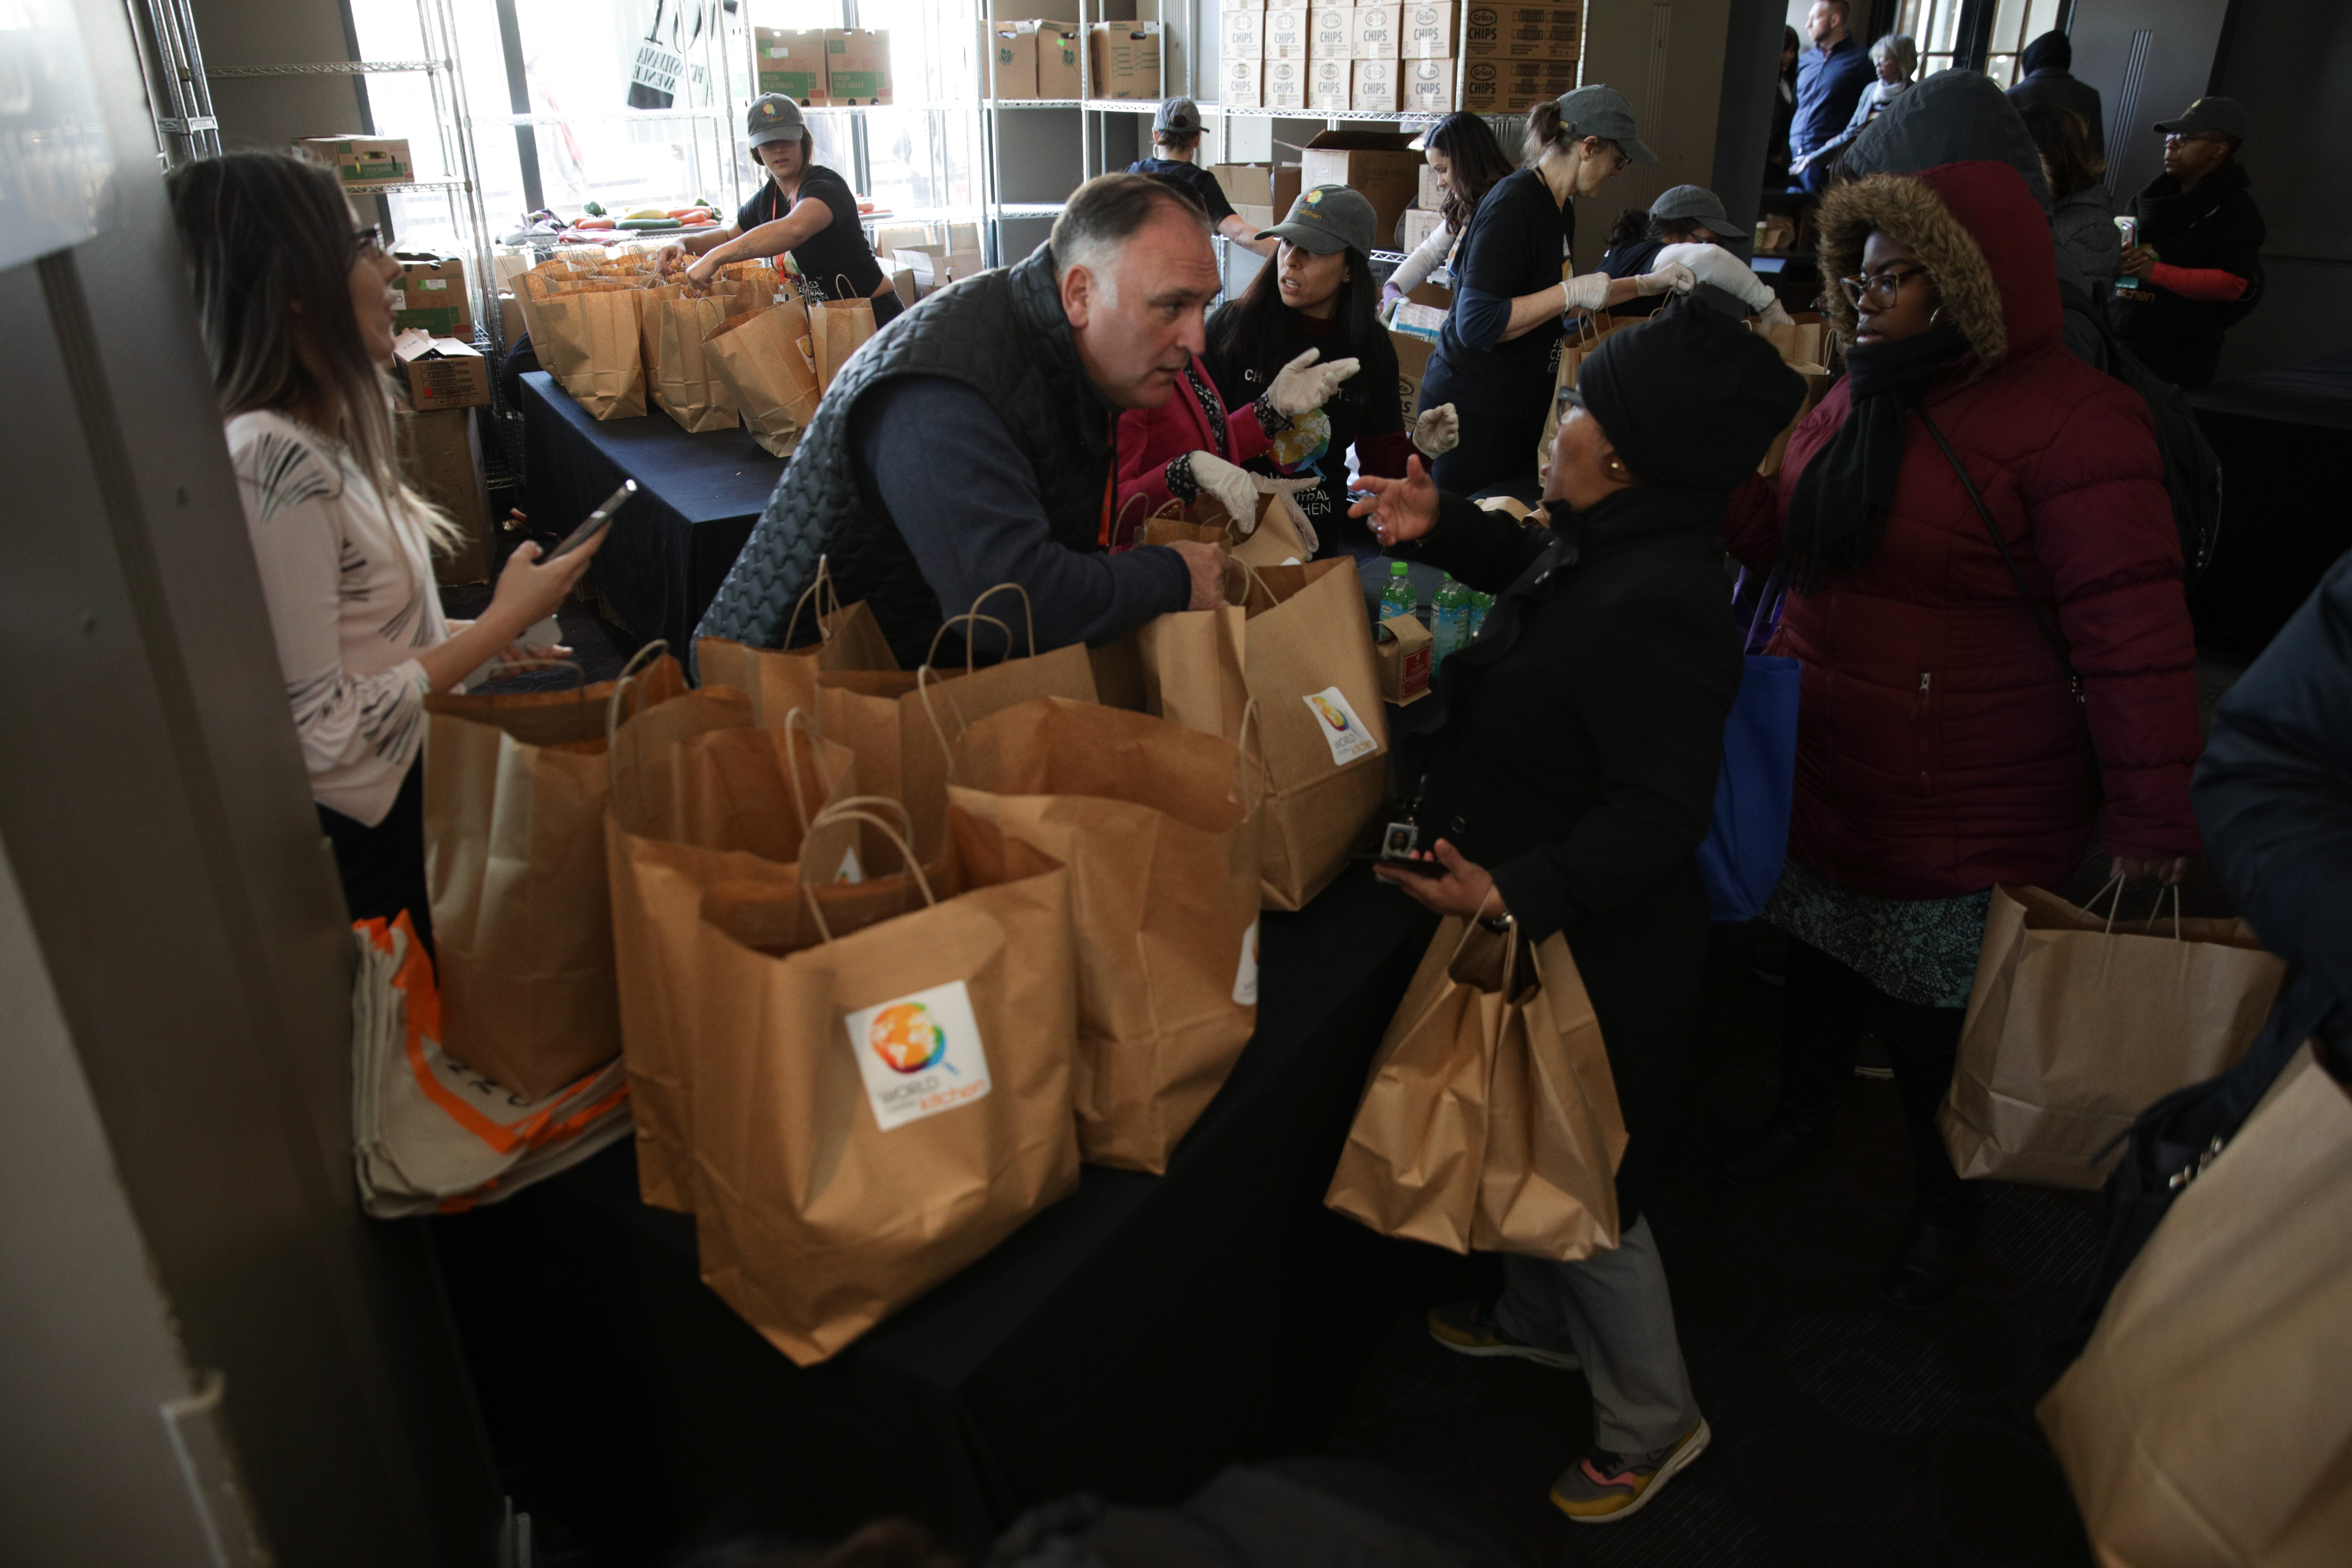 Chef José Andrés helps distribute food to furloughed federal workers in downtown D.C. during the partial government shutdown in January